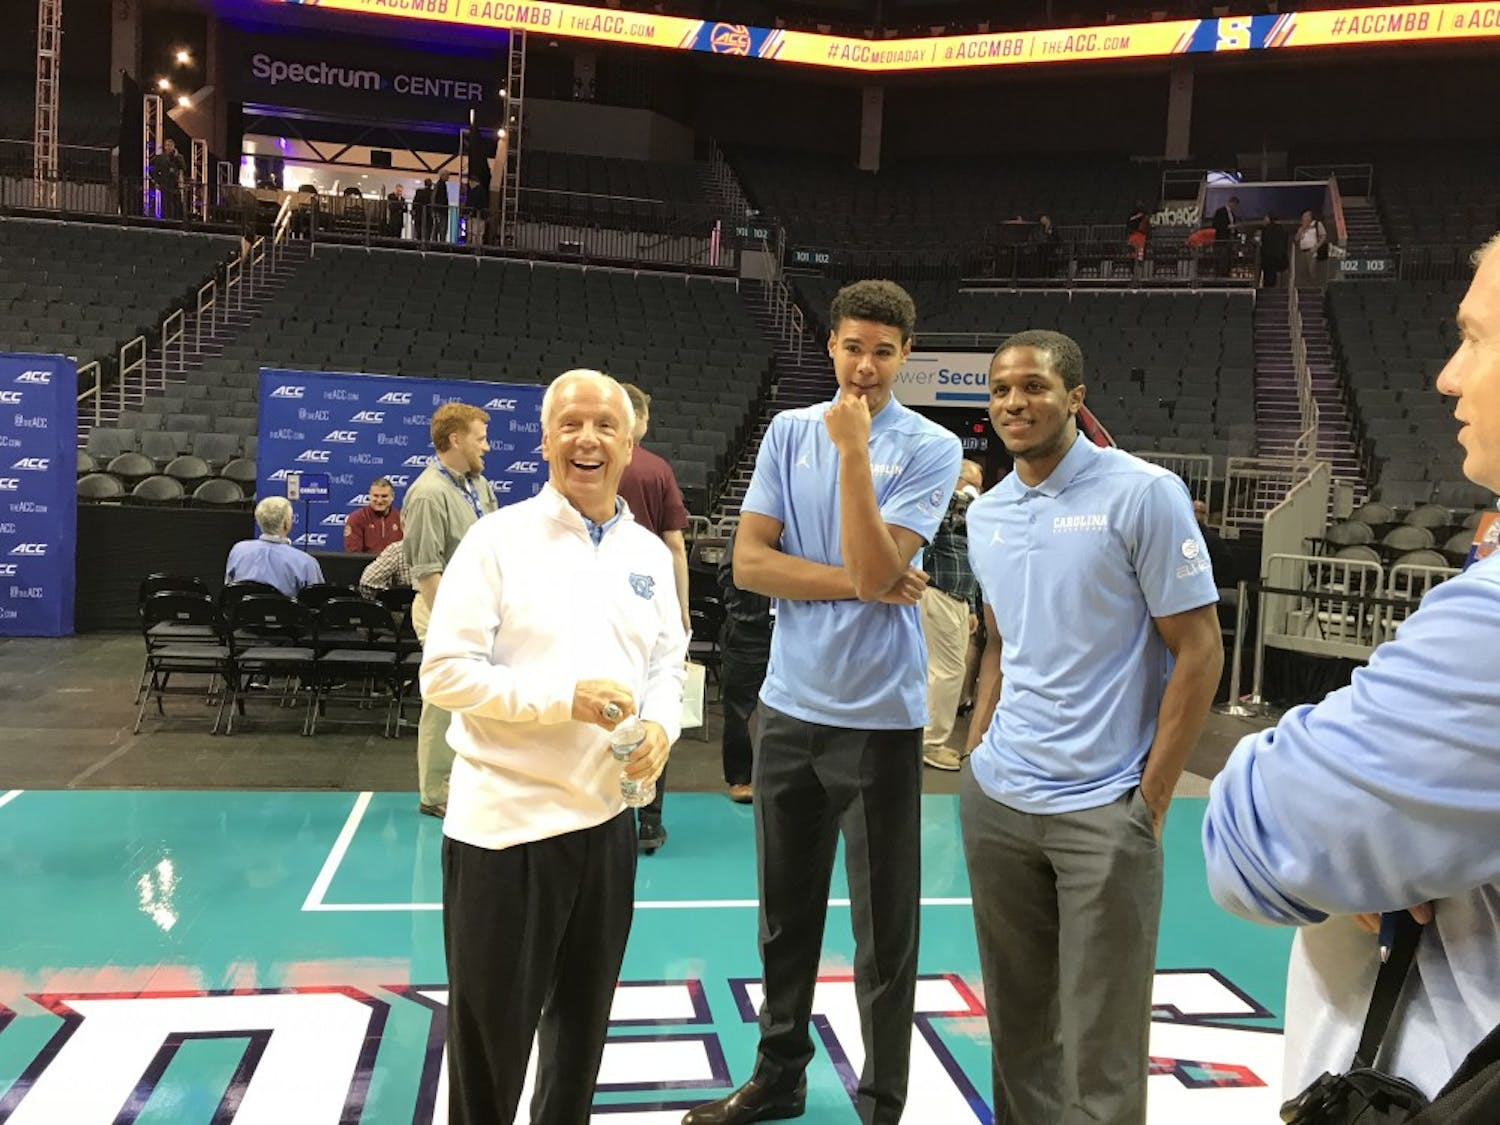 UNC head coach Roy Williams and guards Cameron Johnson and Kenny Williams pose at the Spectrum Center for ACC men's basketball media day on Oct. 24.